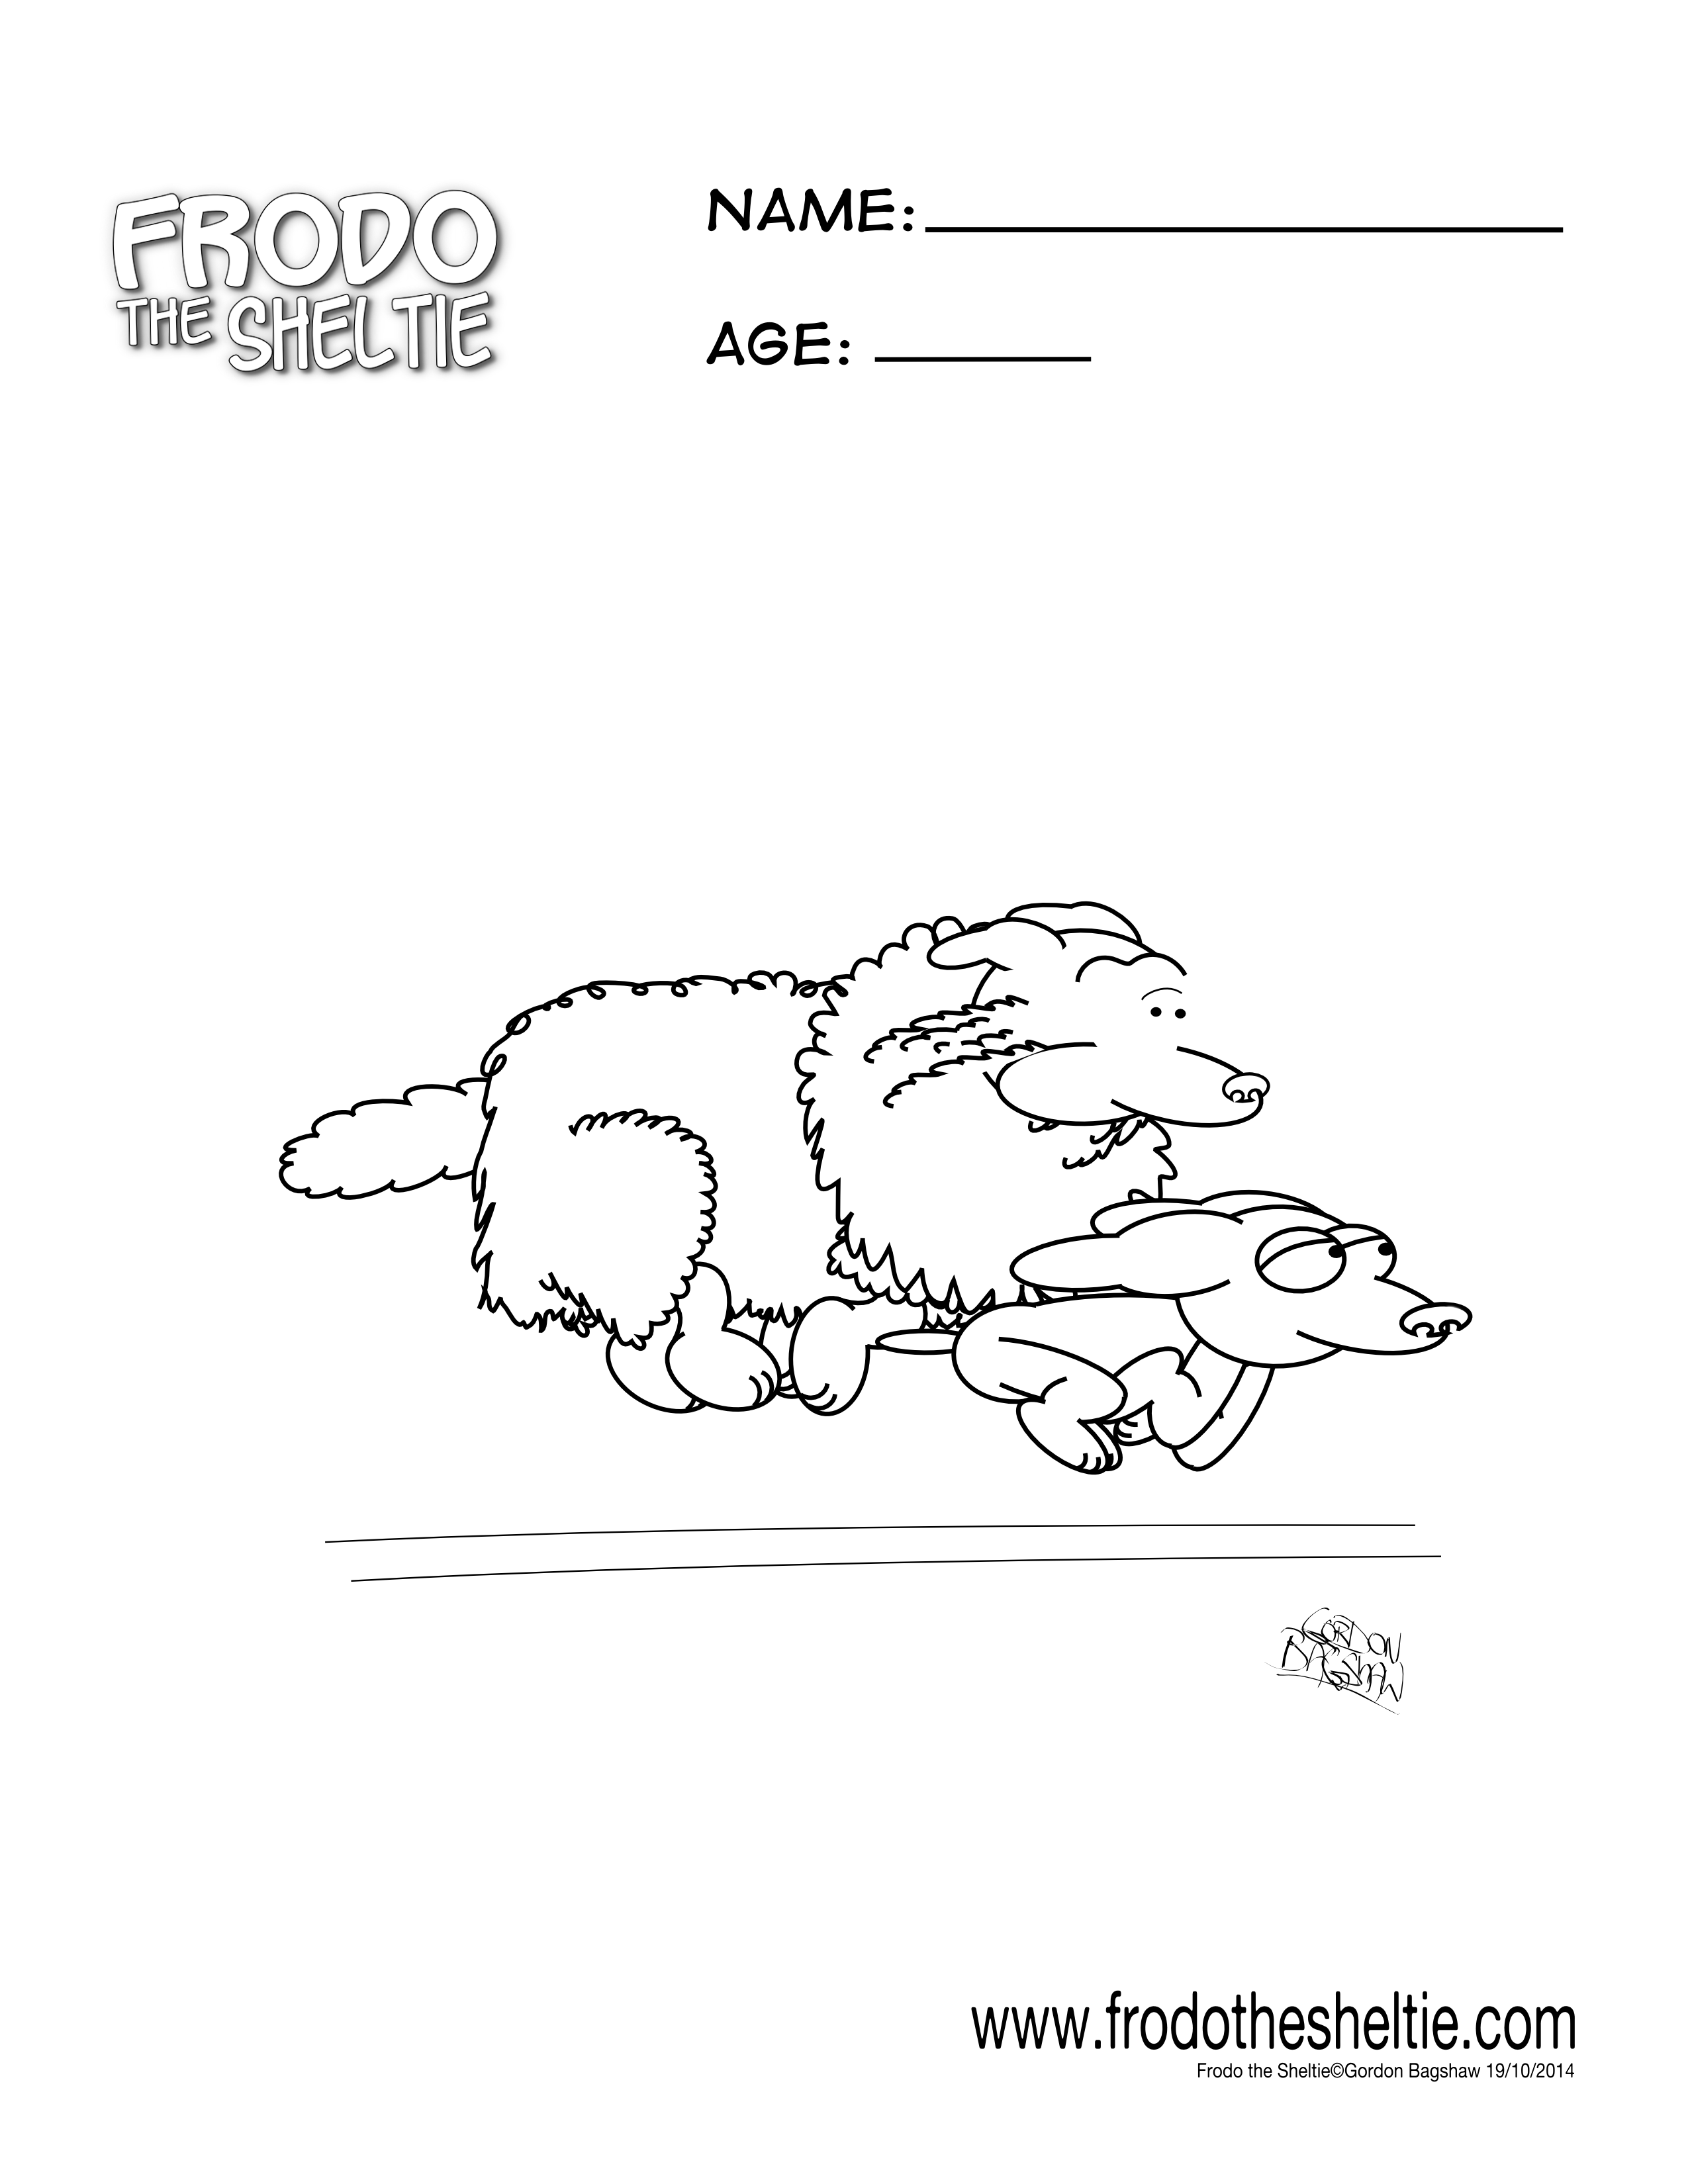 Frodo's Free Coloring Pages – Frodo The Sheltie